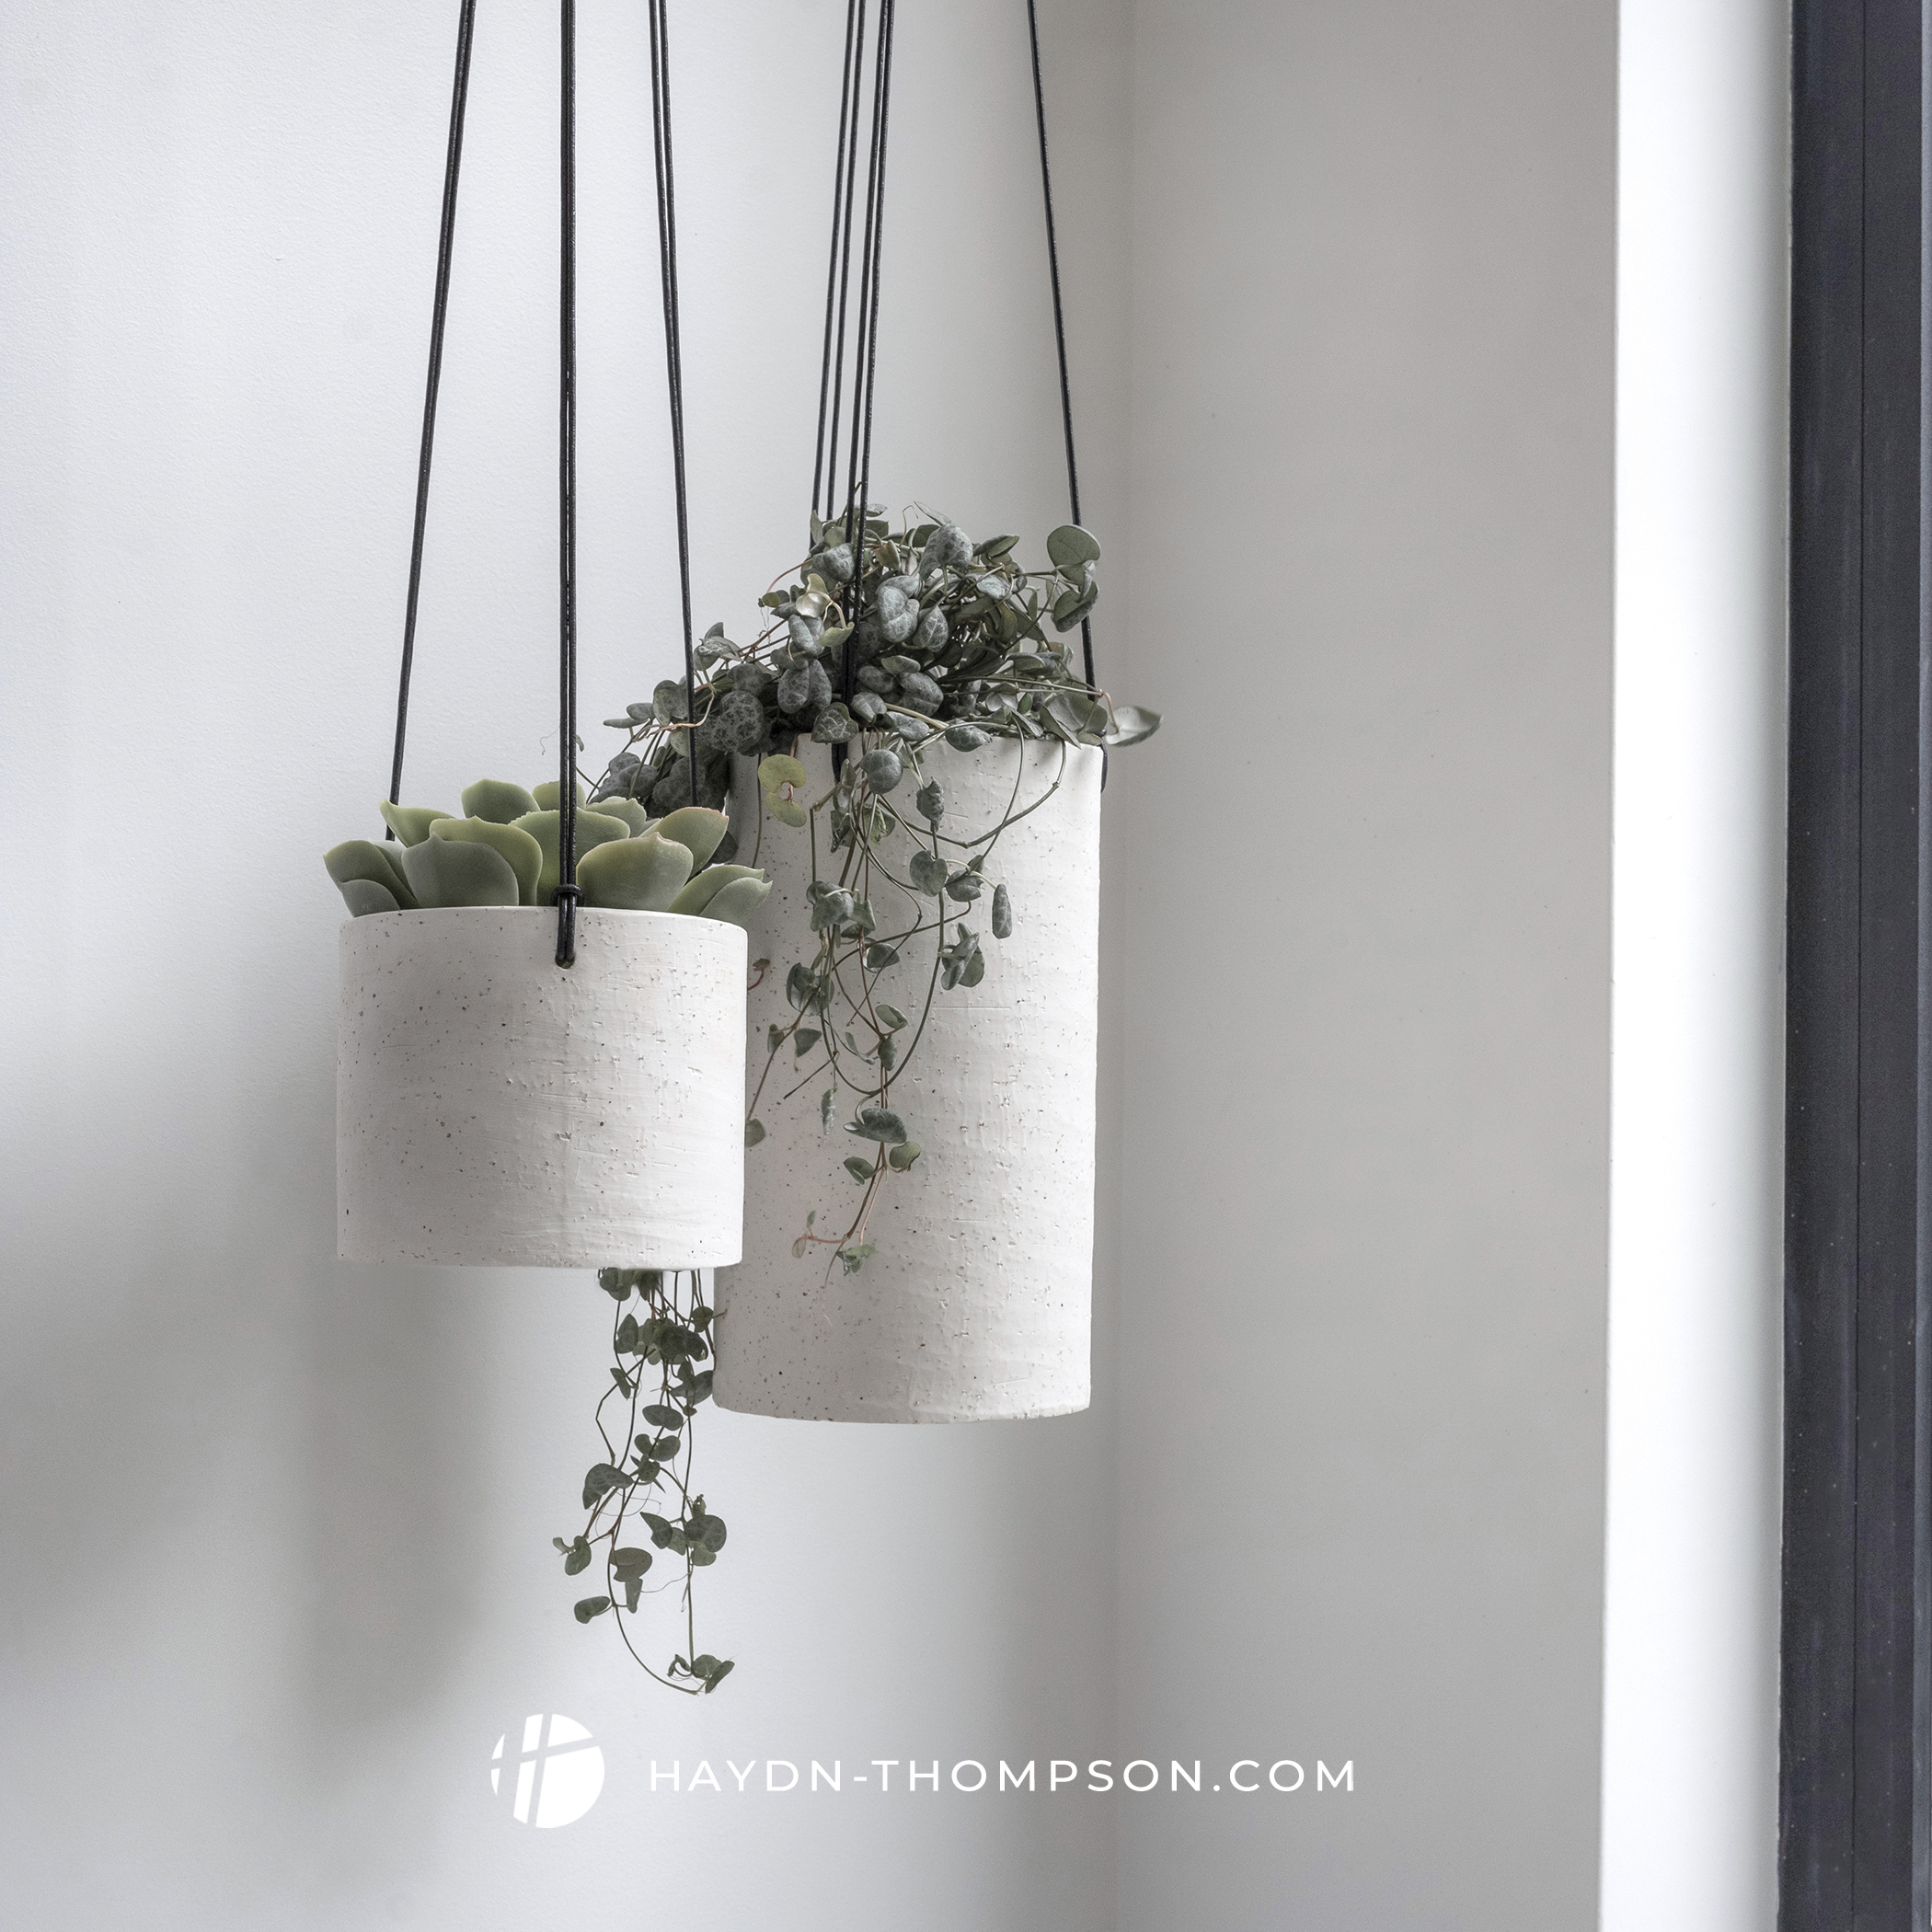 Planters - Long Hanging (Small Size - Watermark).jpg